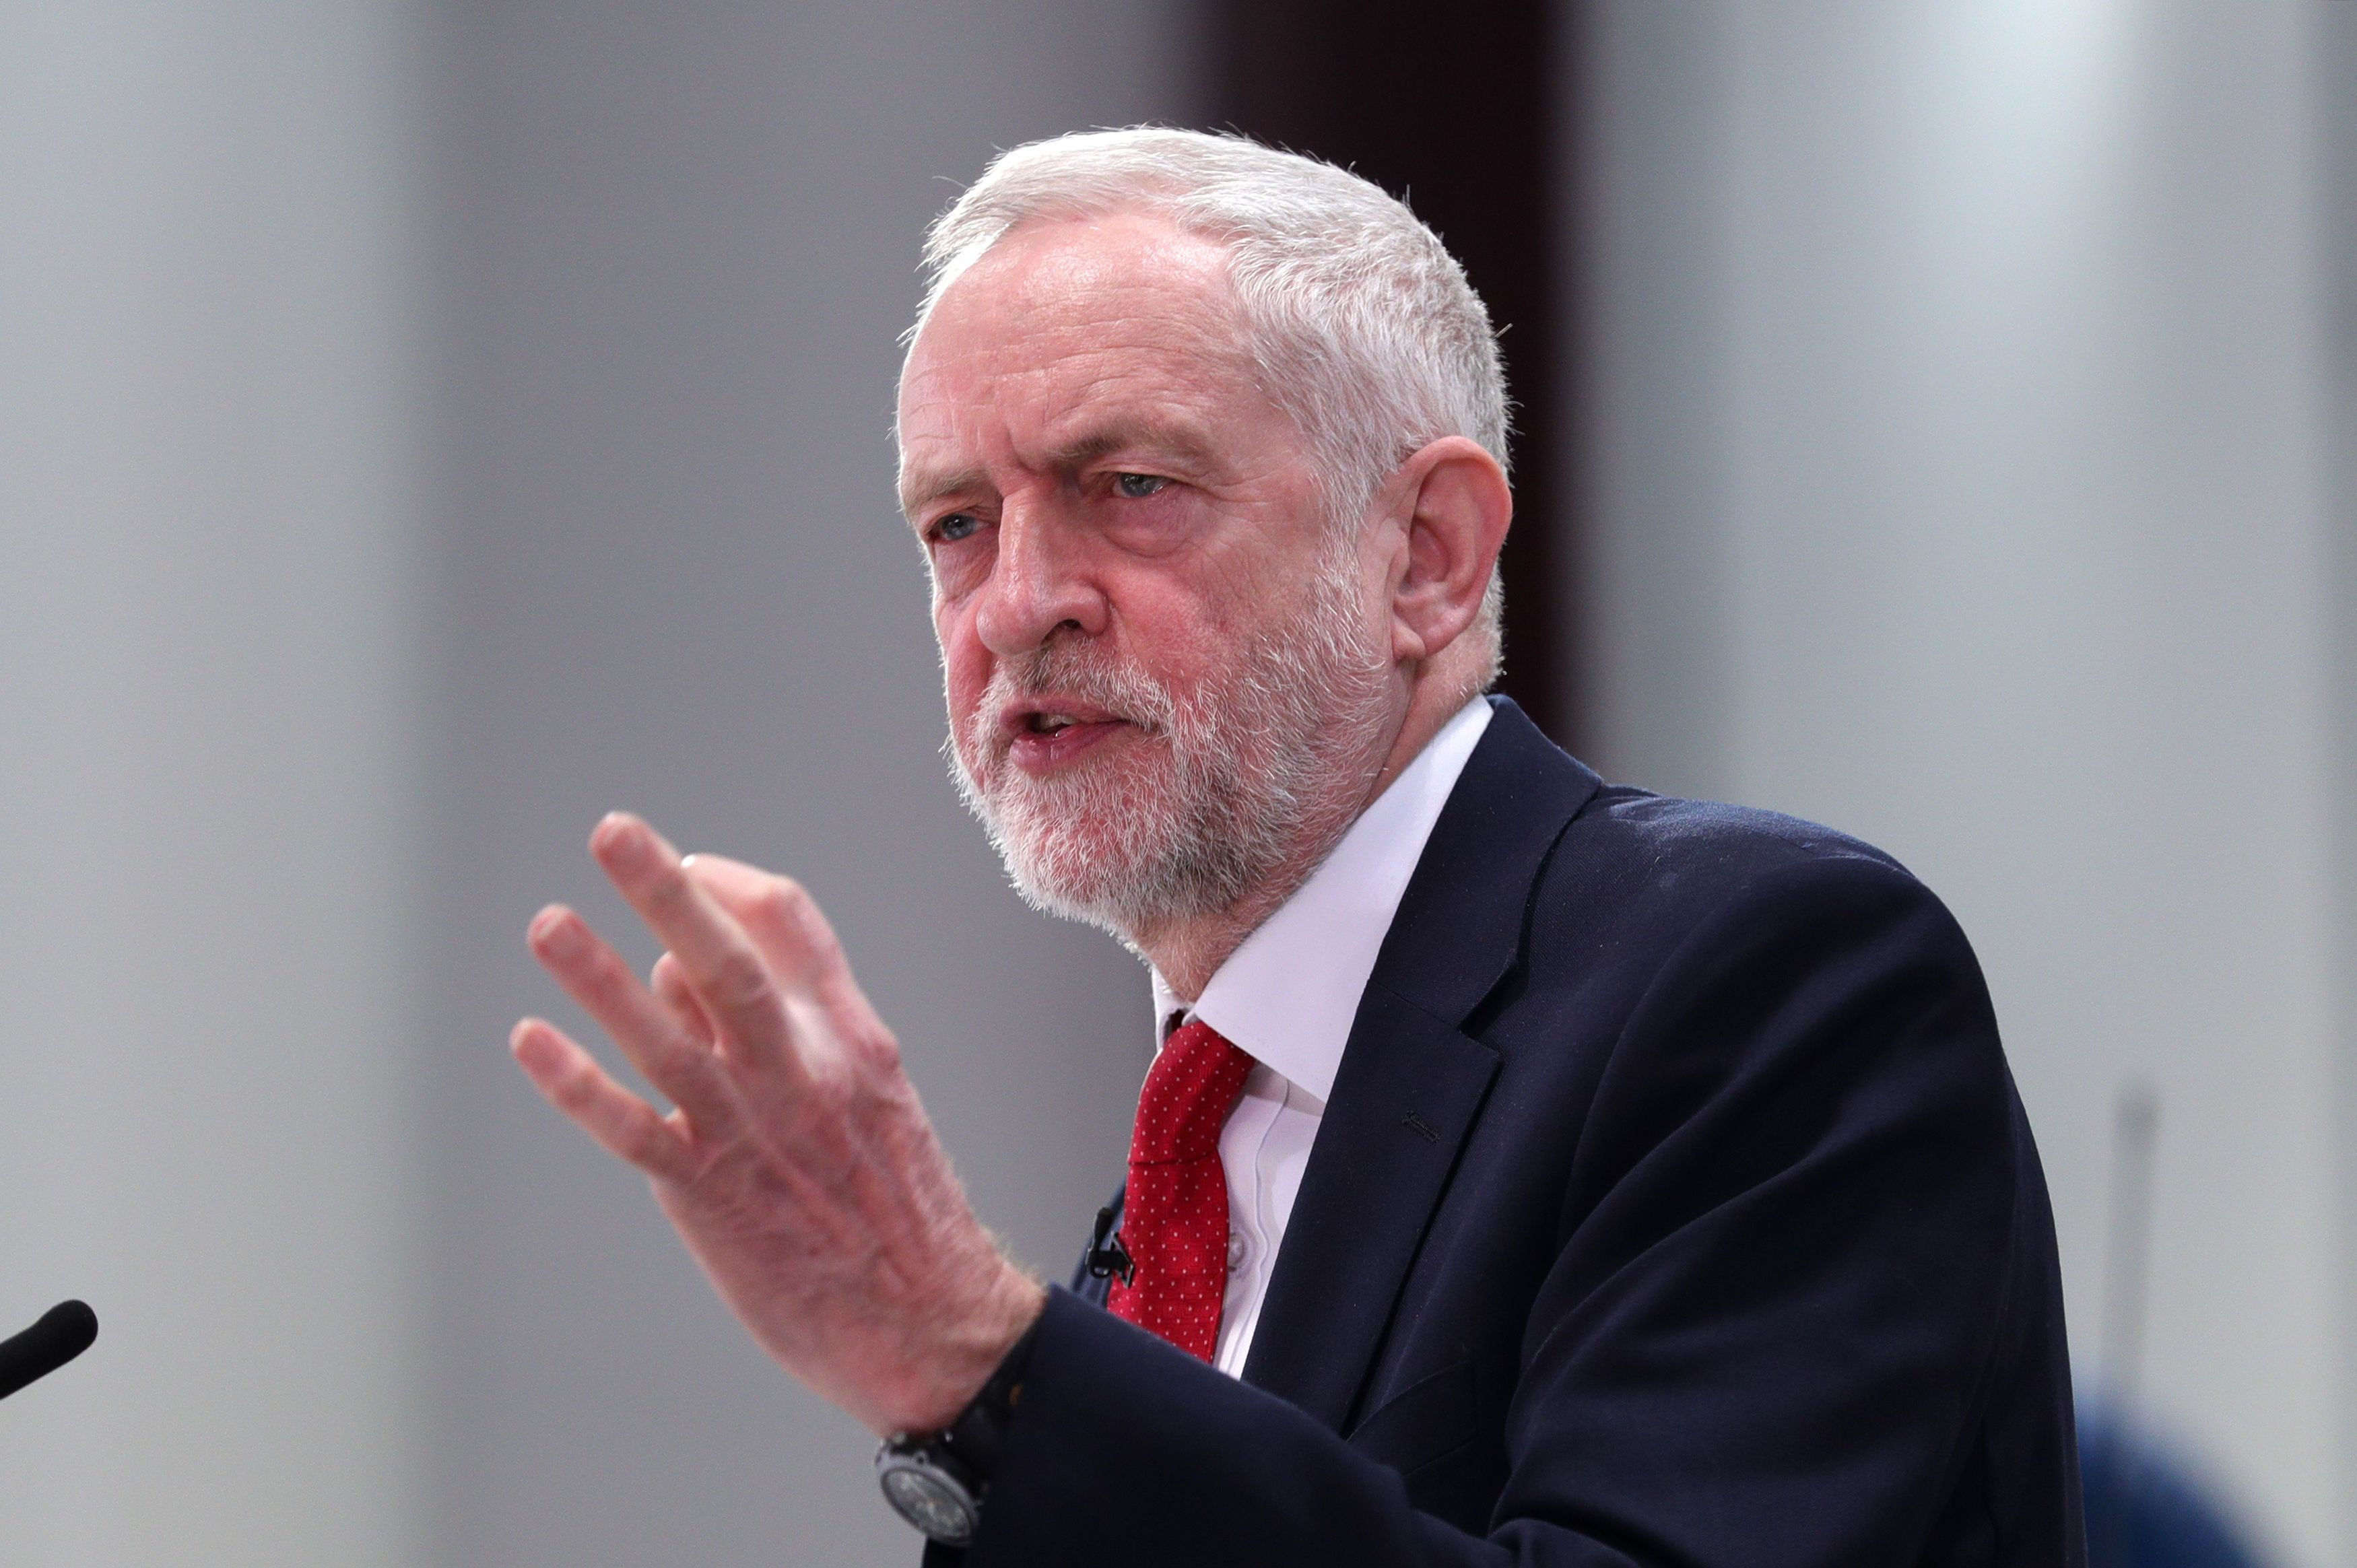 Jeremy Corbyn: single market incompatible with Labour plans to overhaul capitalism